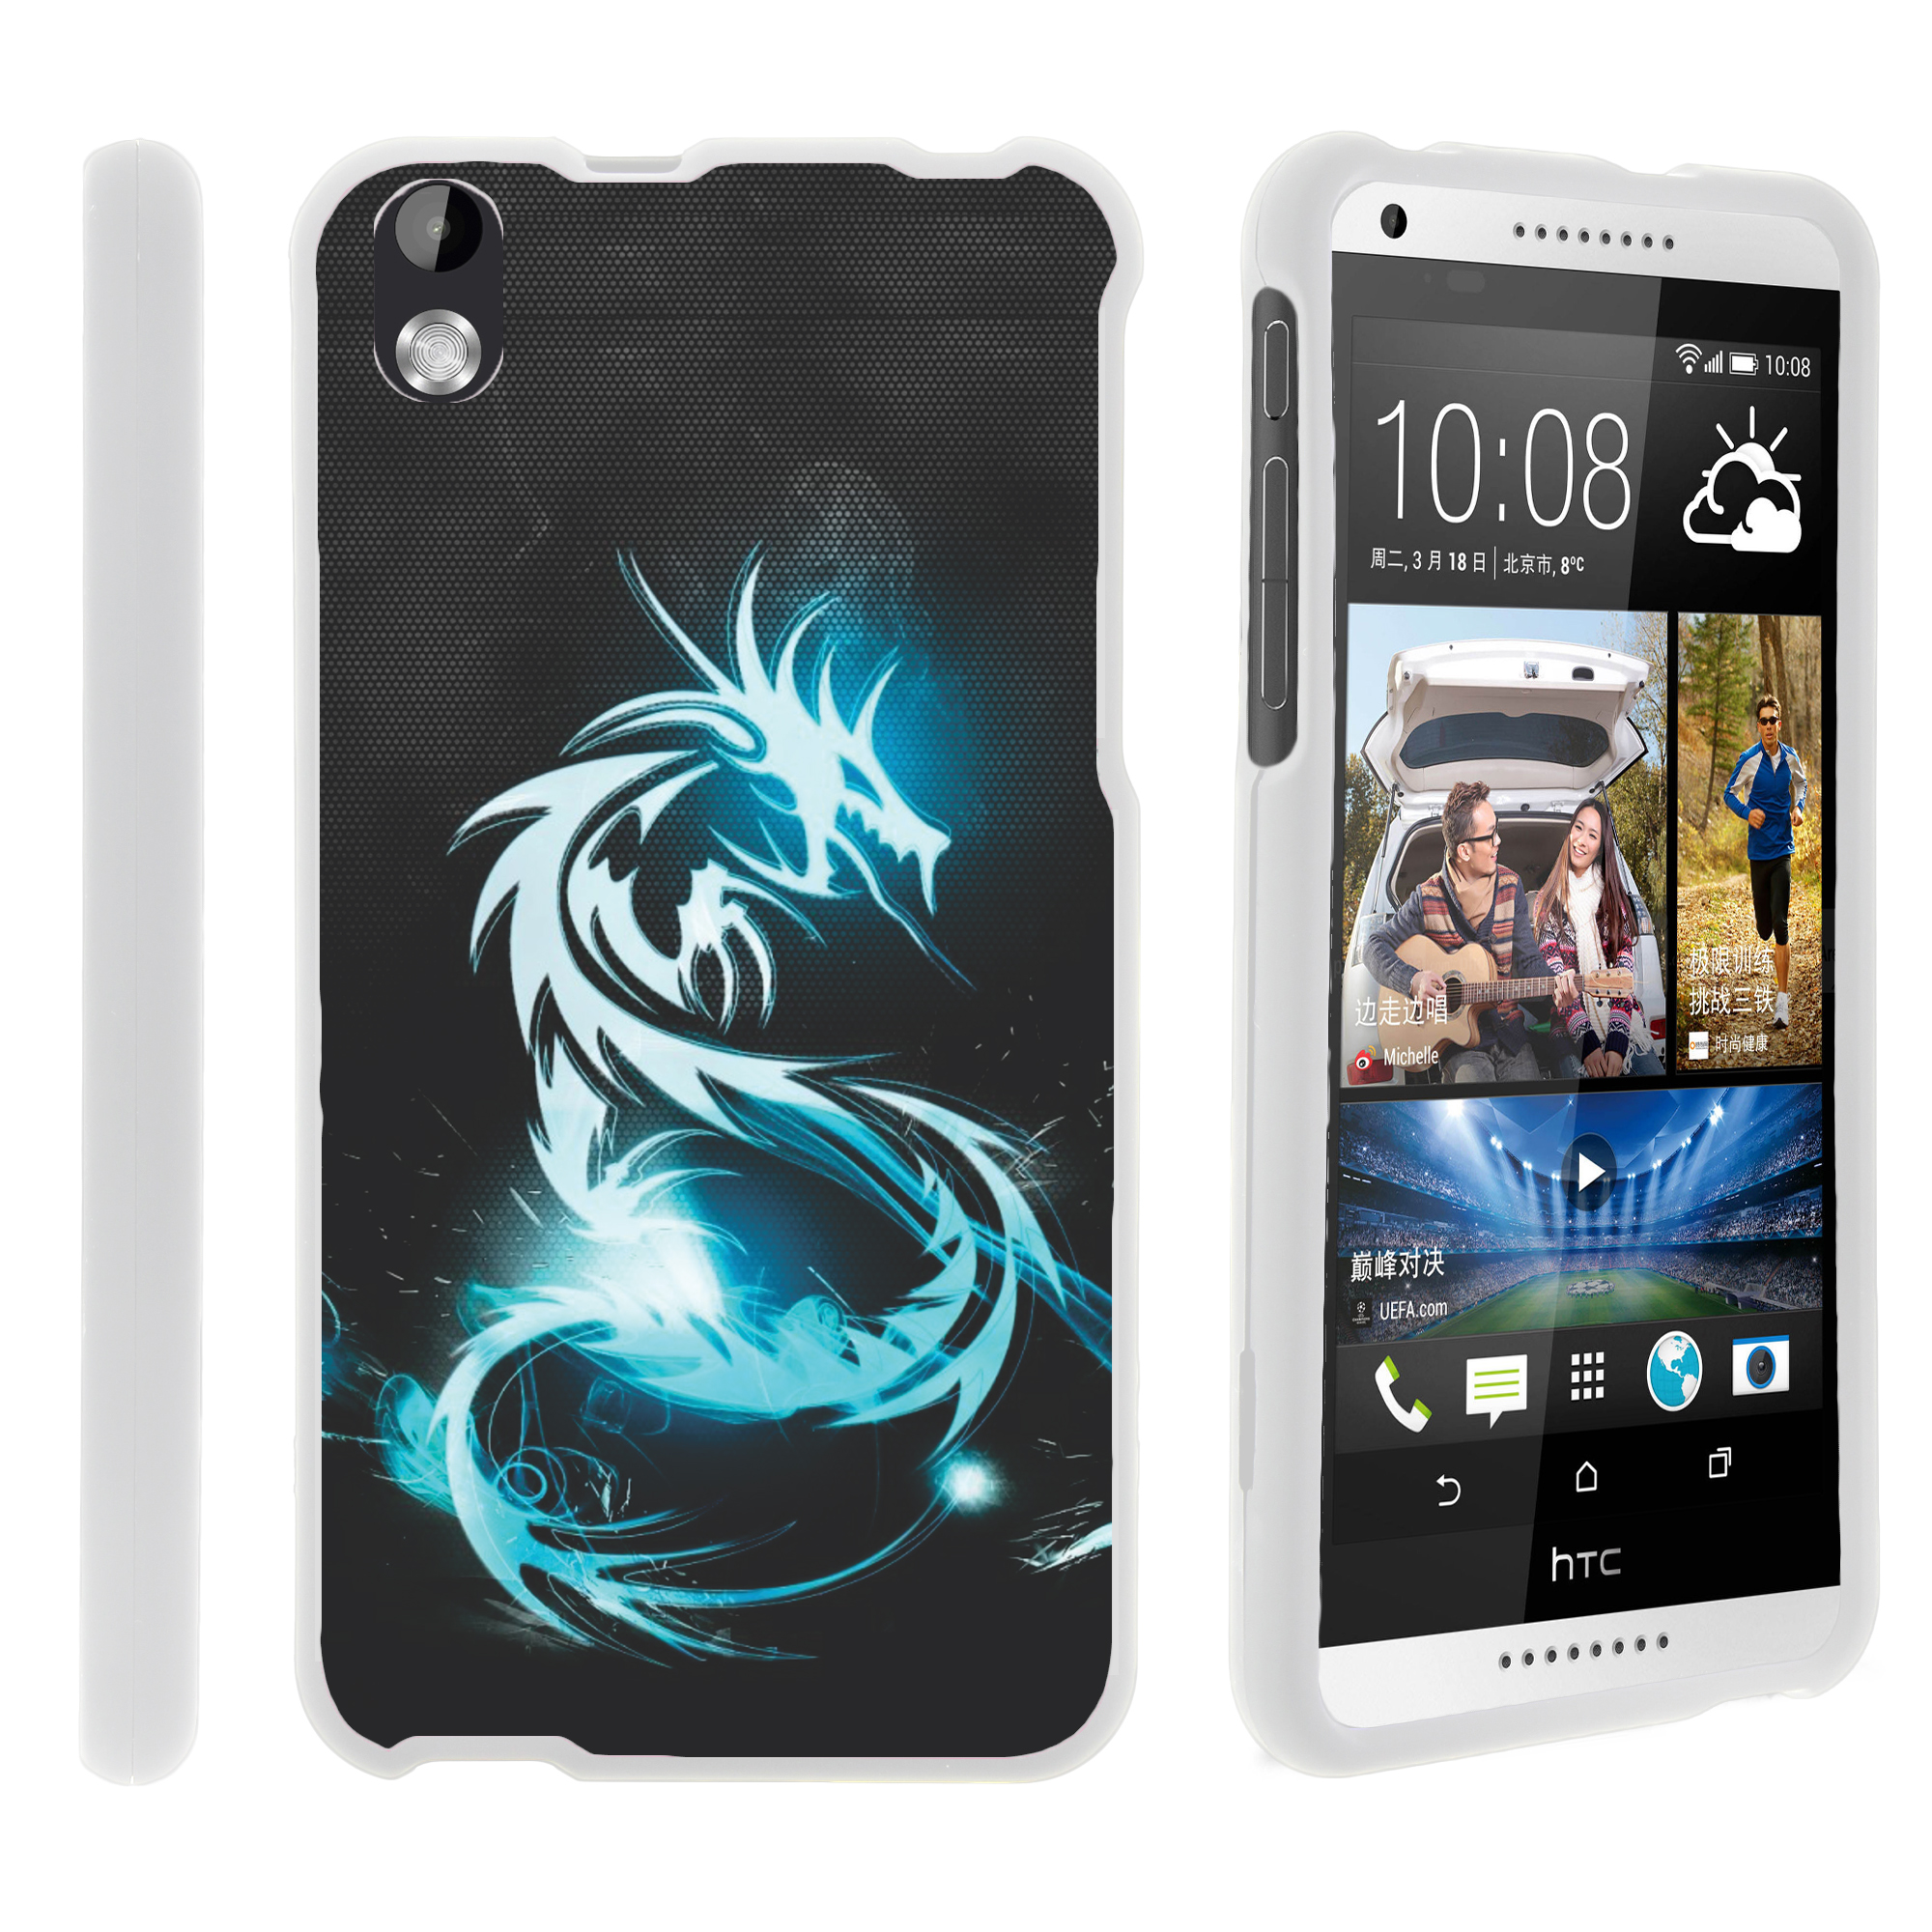 HTC Desire 816, [SNAP SHELL][White] 2 Piece Snap On Rubberized Hard White Plastic Cell Phone Case with Exclusive Art - Demon Cyborg